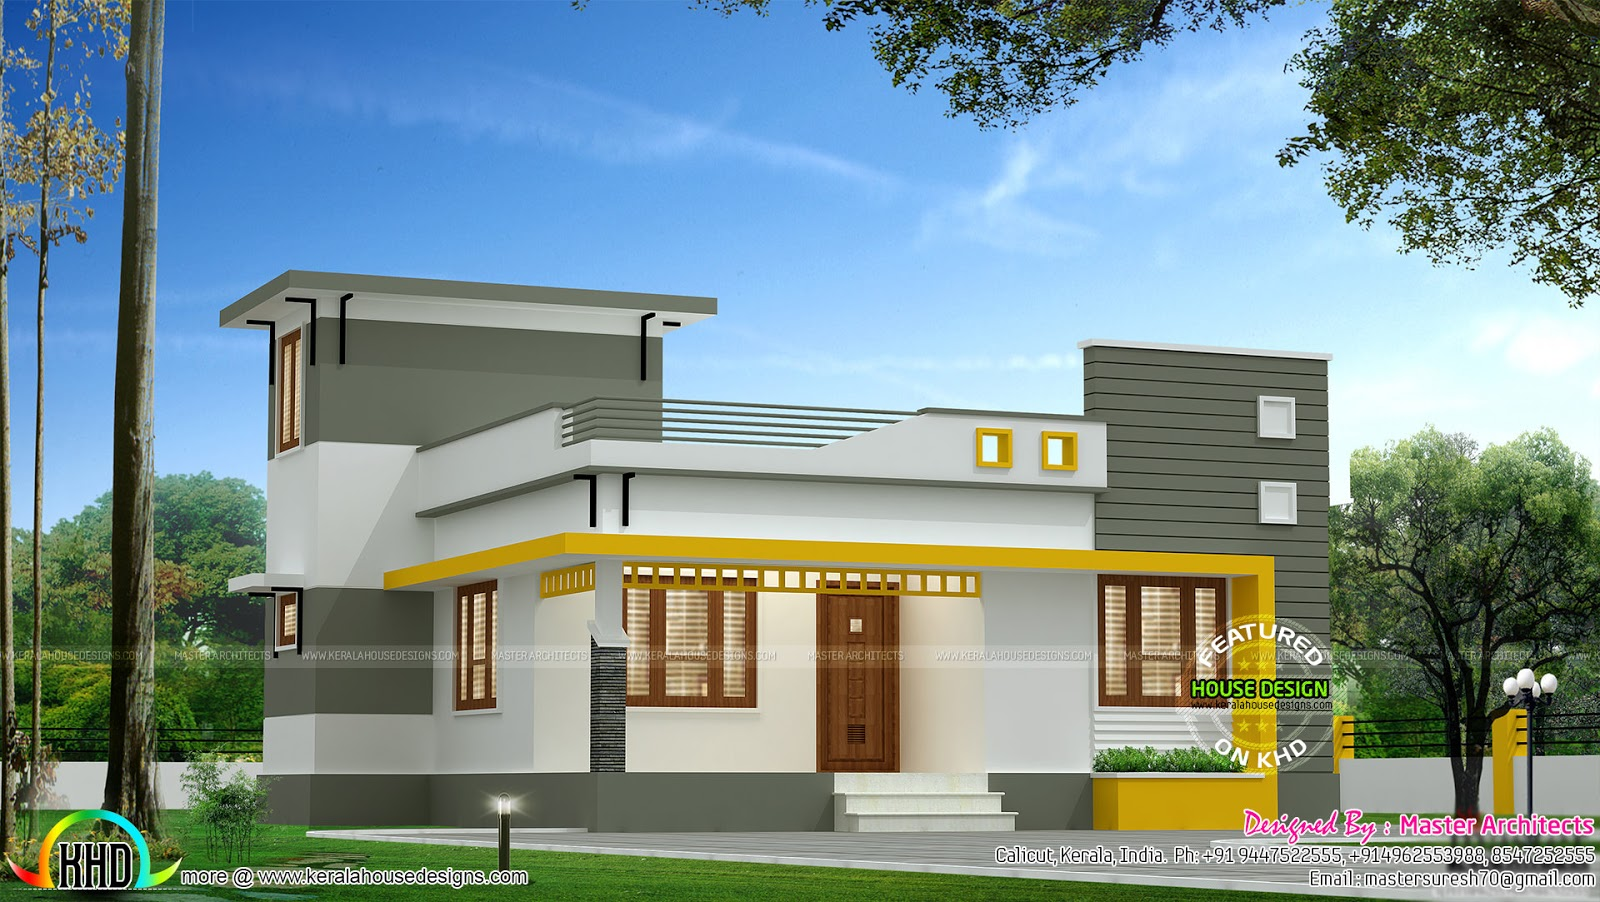 Modern Single Floor House Designs Of 3 Bedroom Single Floor Modern Architecture Home Kerala